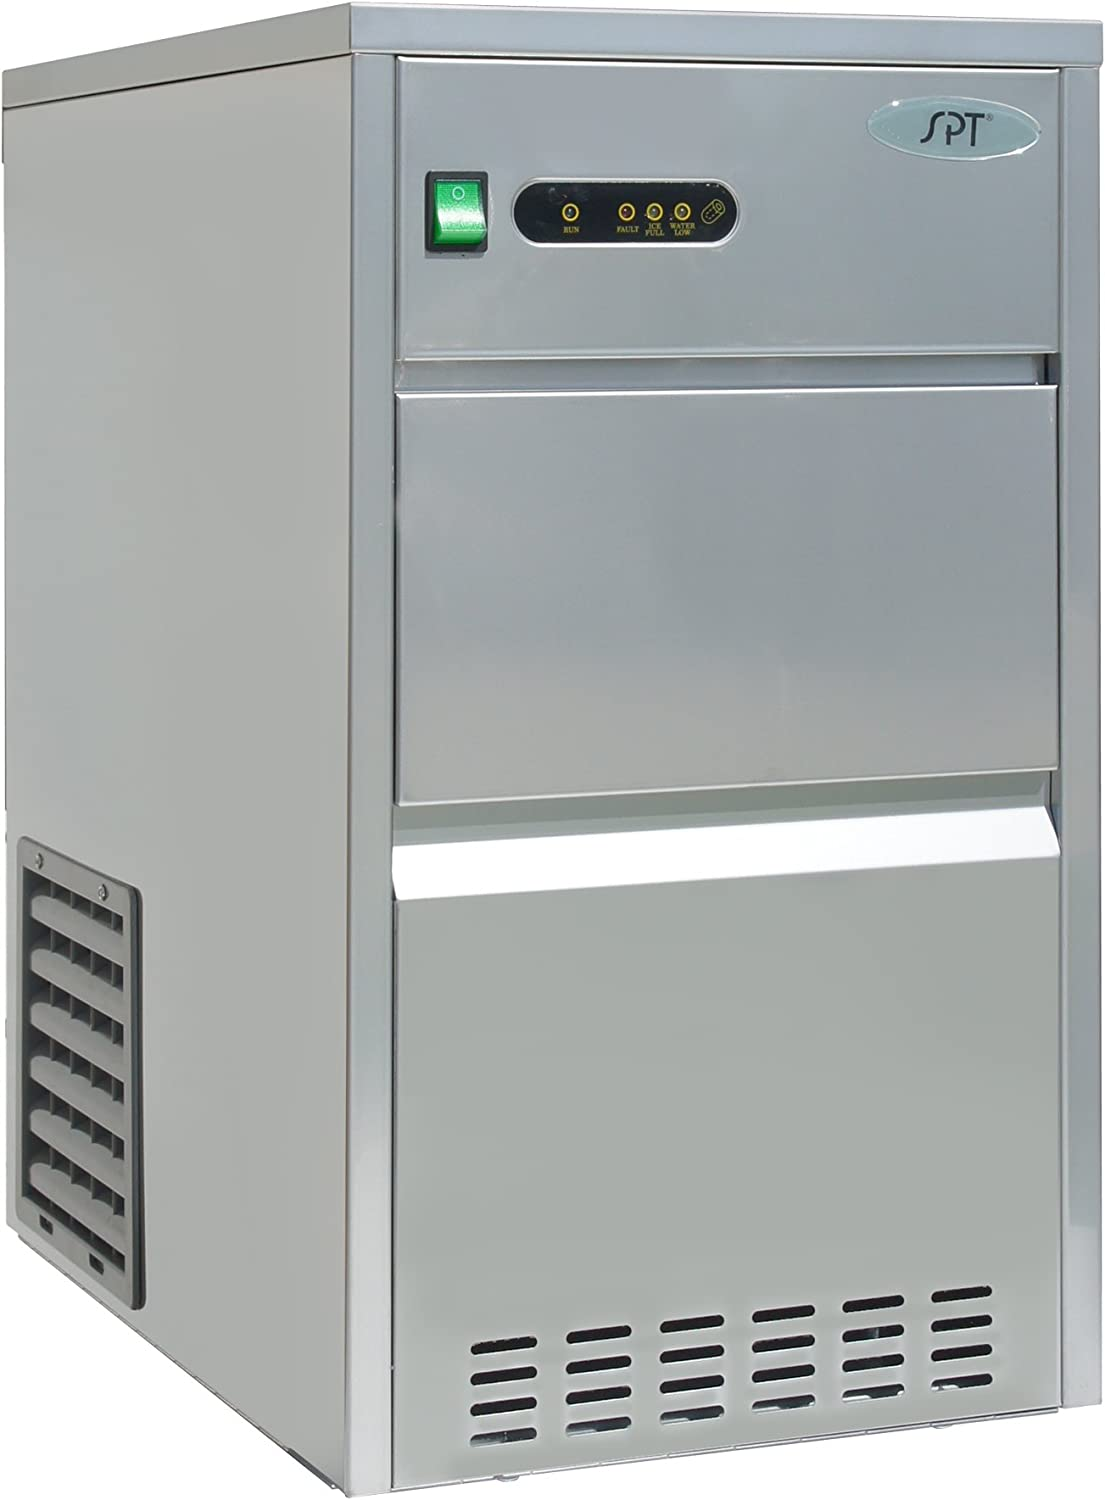 SPT IM-441C 44 lbs Automatic Stainless Steel Ice Maker, Silver